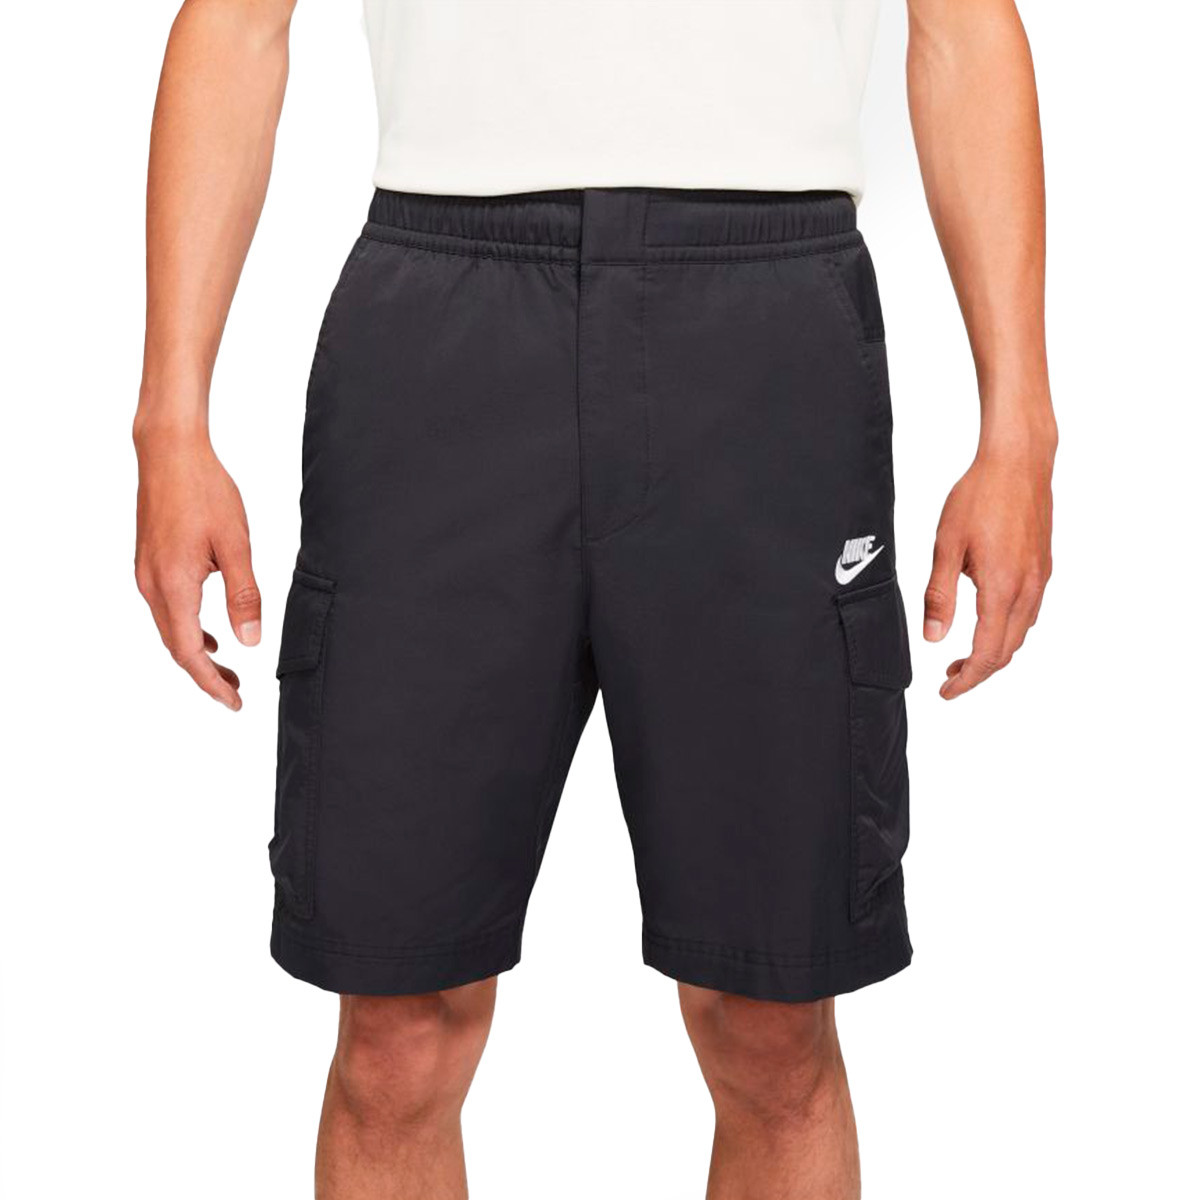 Uhlsport Mens Essential Woven Training Football Shorts with Zip Pockets Black